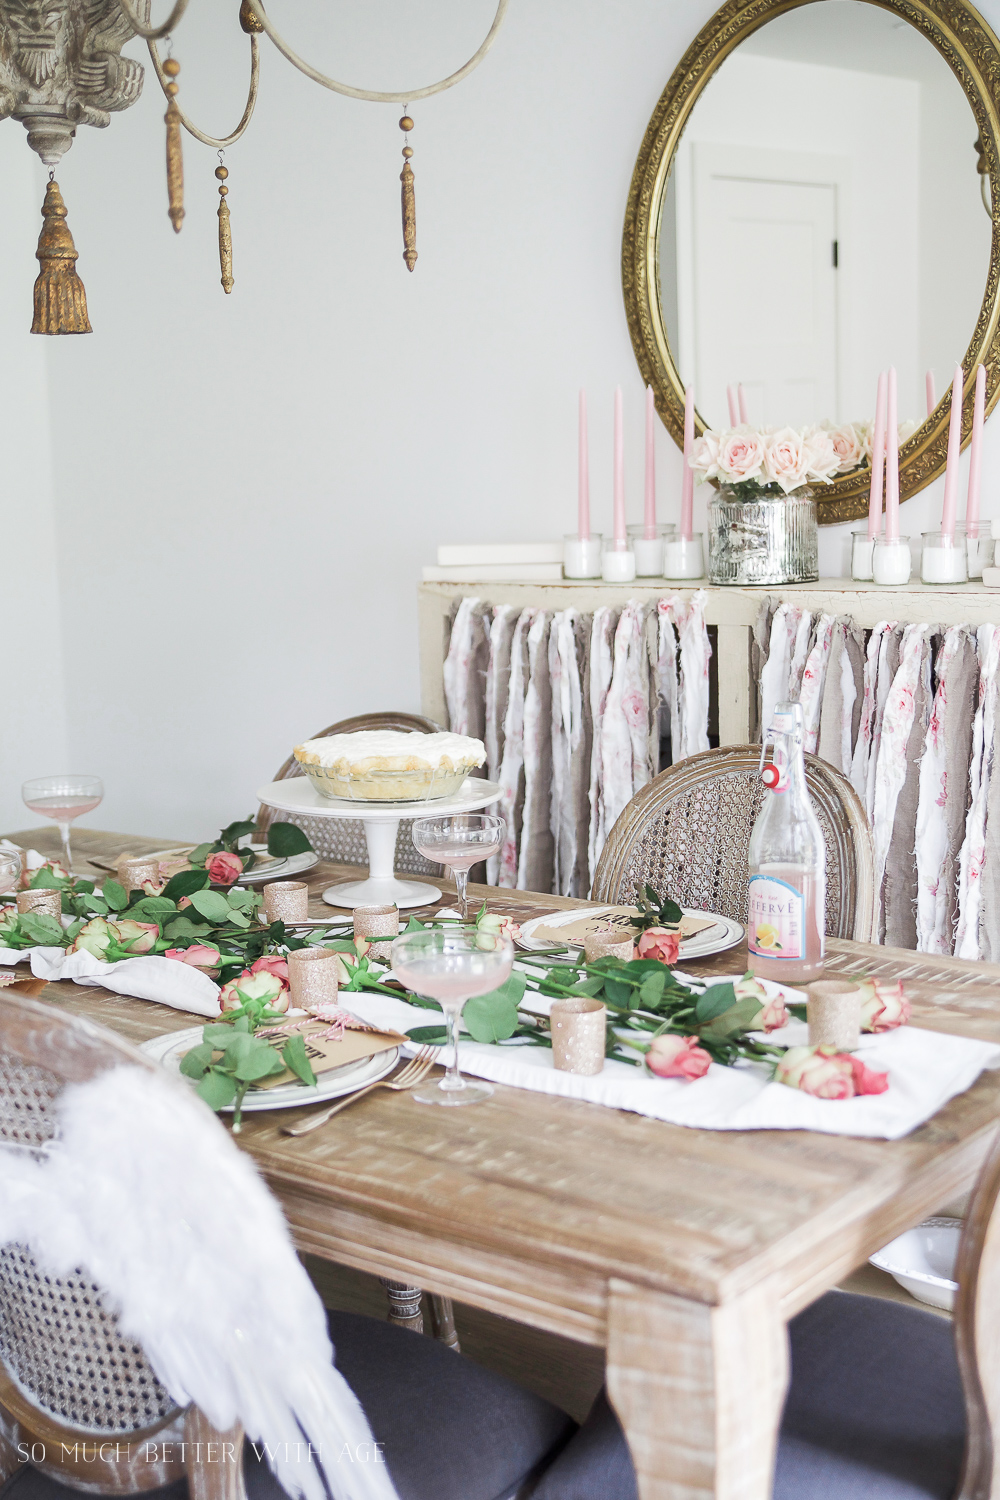 How to Set a Beautiful Valentine's Day Table Setting, a step-by-step guide - So Much Better With Age